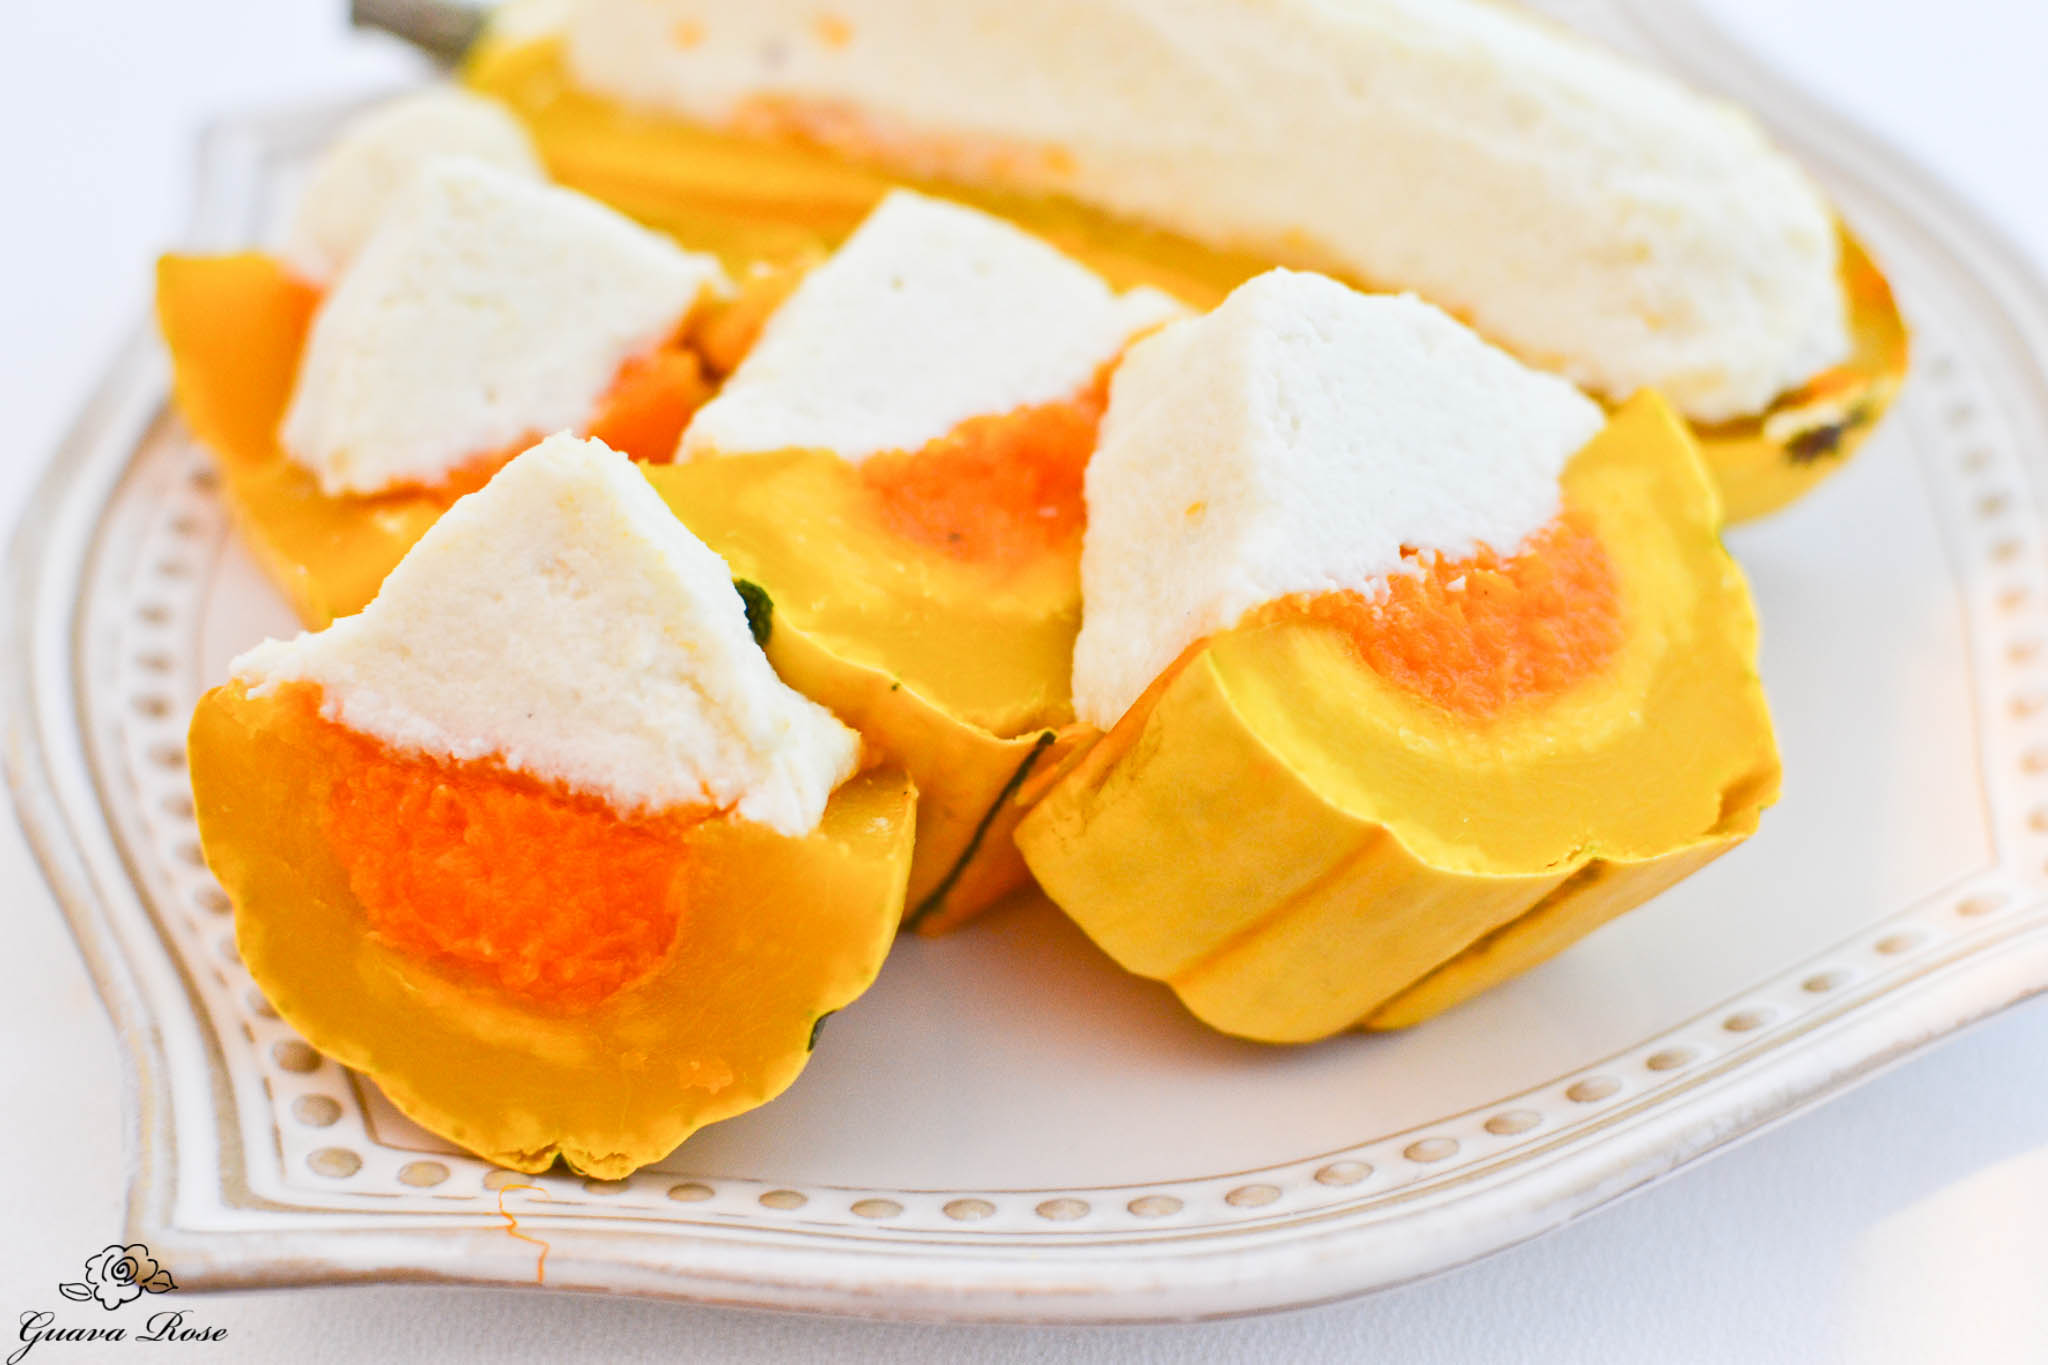 Candy Corned Squash (Delicata, Butternut, and Cauliflower) slices 2